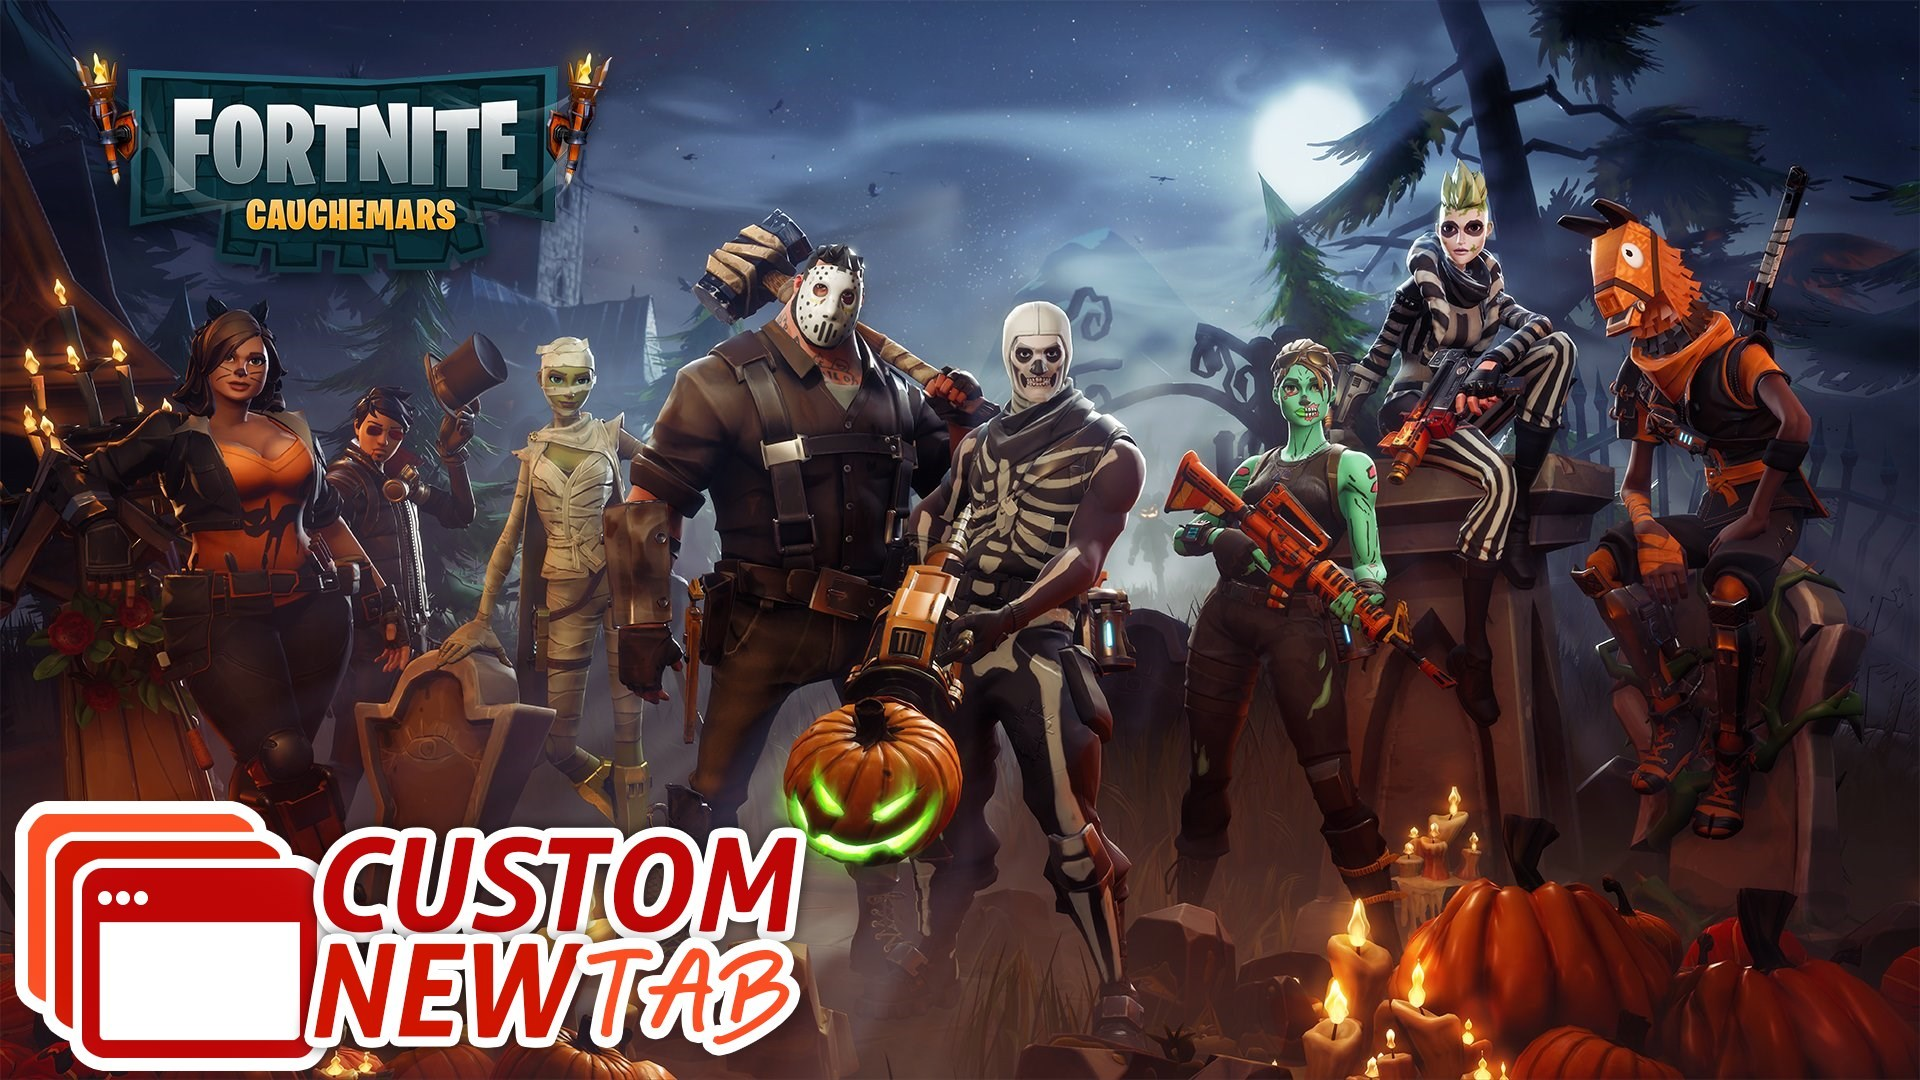 Fortnite Battle Royale Wallpaper Fortnite Save The World Halloween Heroes 1185443 Hd Wallpaper Backgrounds Download